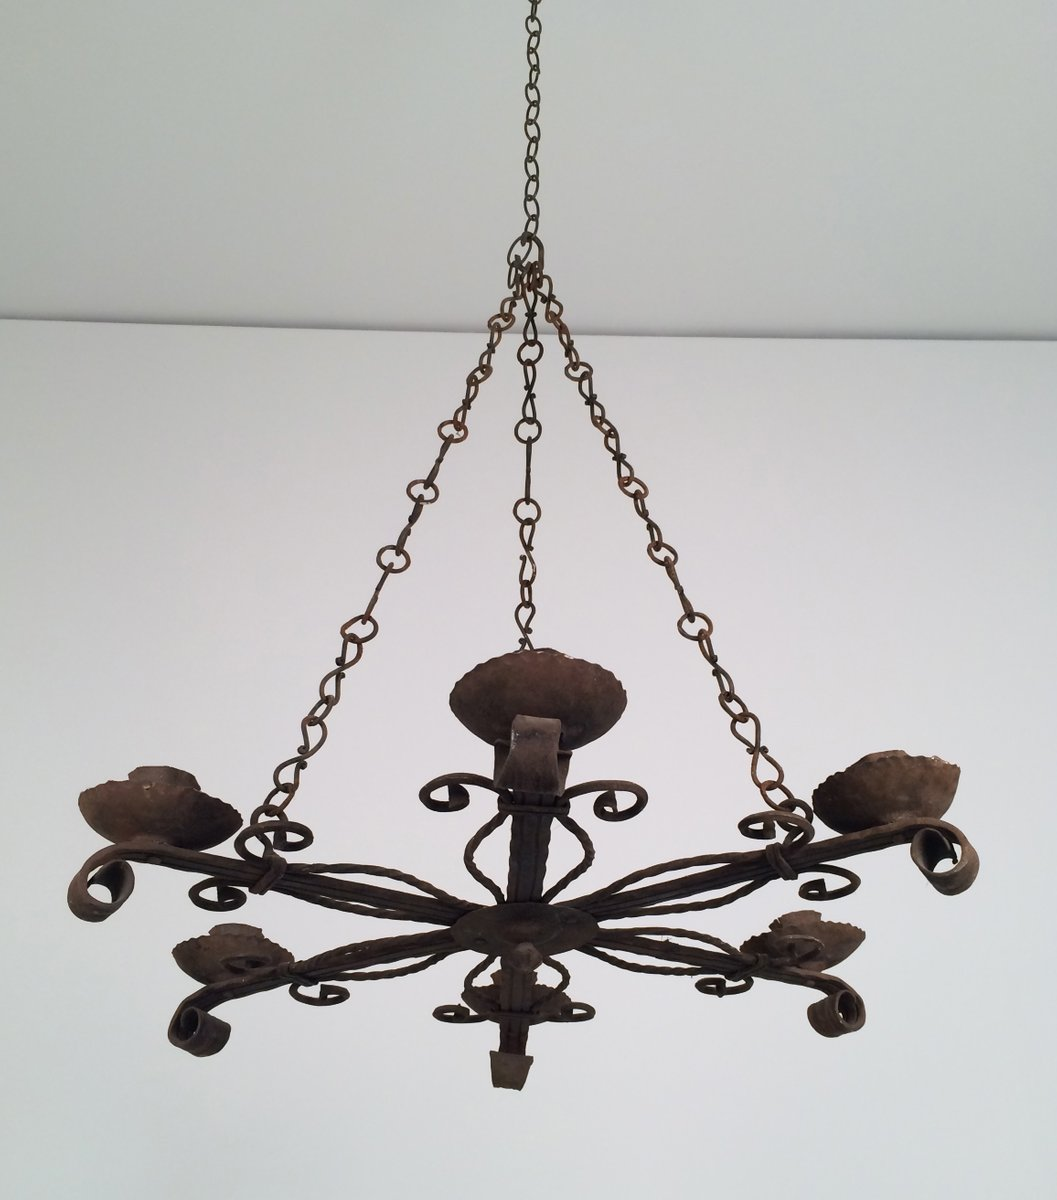 Wrought iron chandelier with 5 candle holders 1920s for sale at pamono wrought iron chandelier with 5 candle holders 1920s aloadofball Images